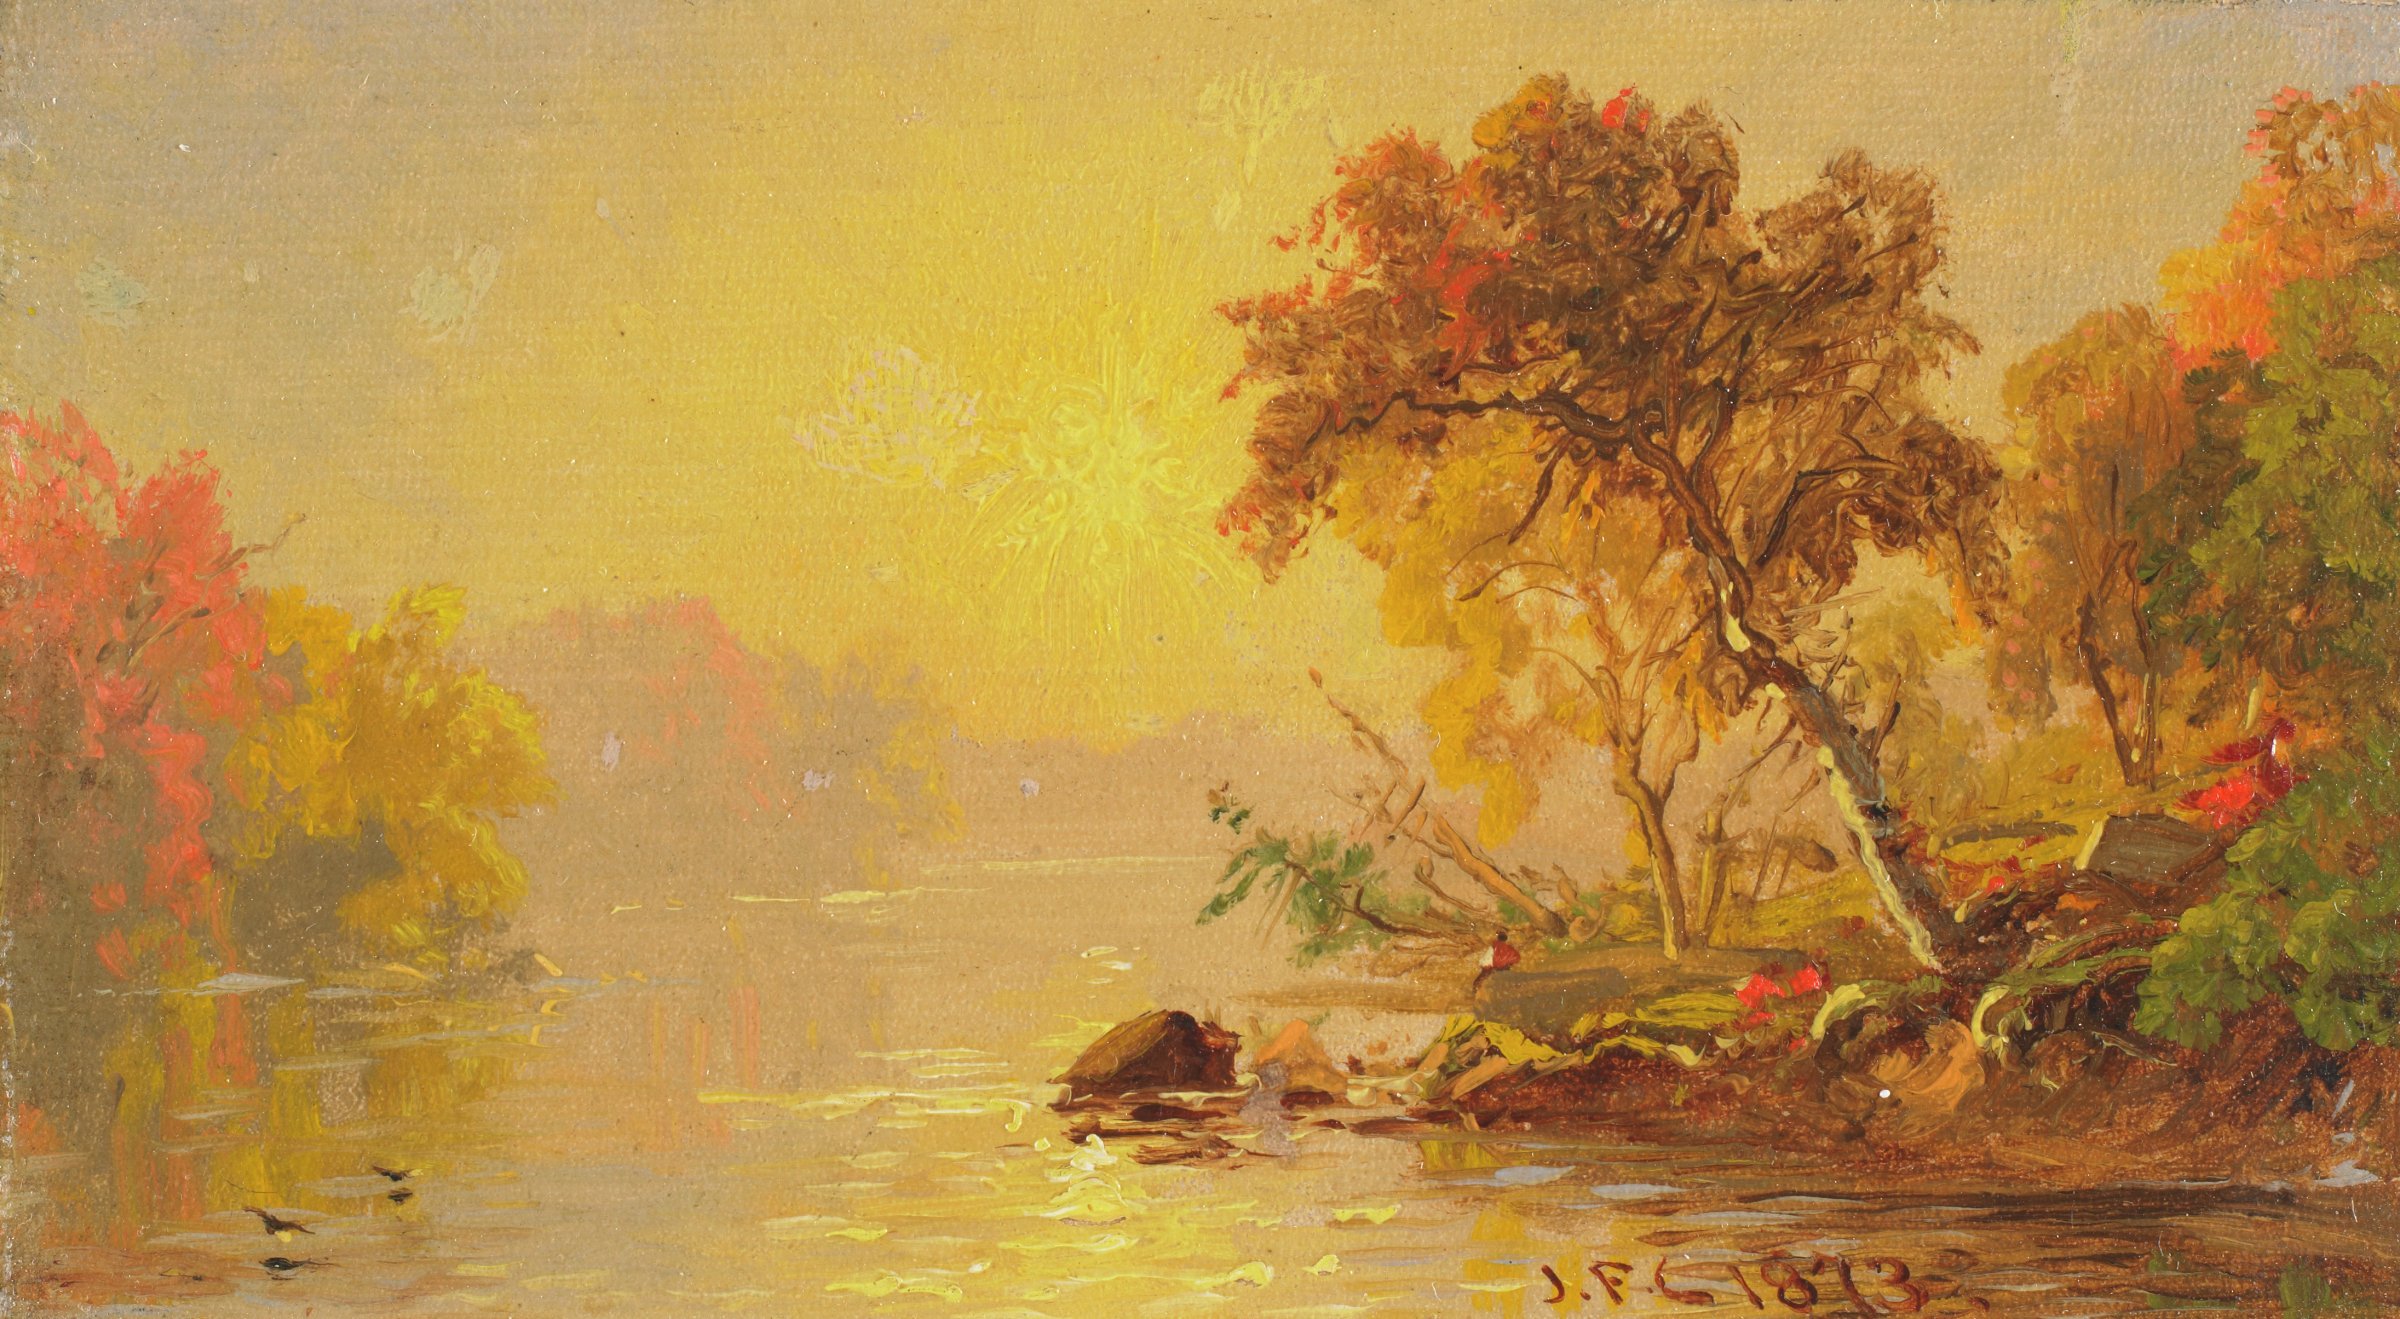 Landscape with sun-bathed lake and wooded shores